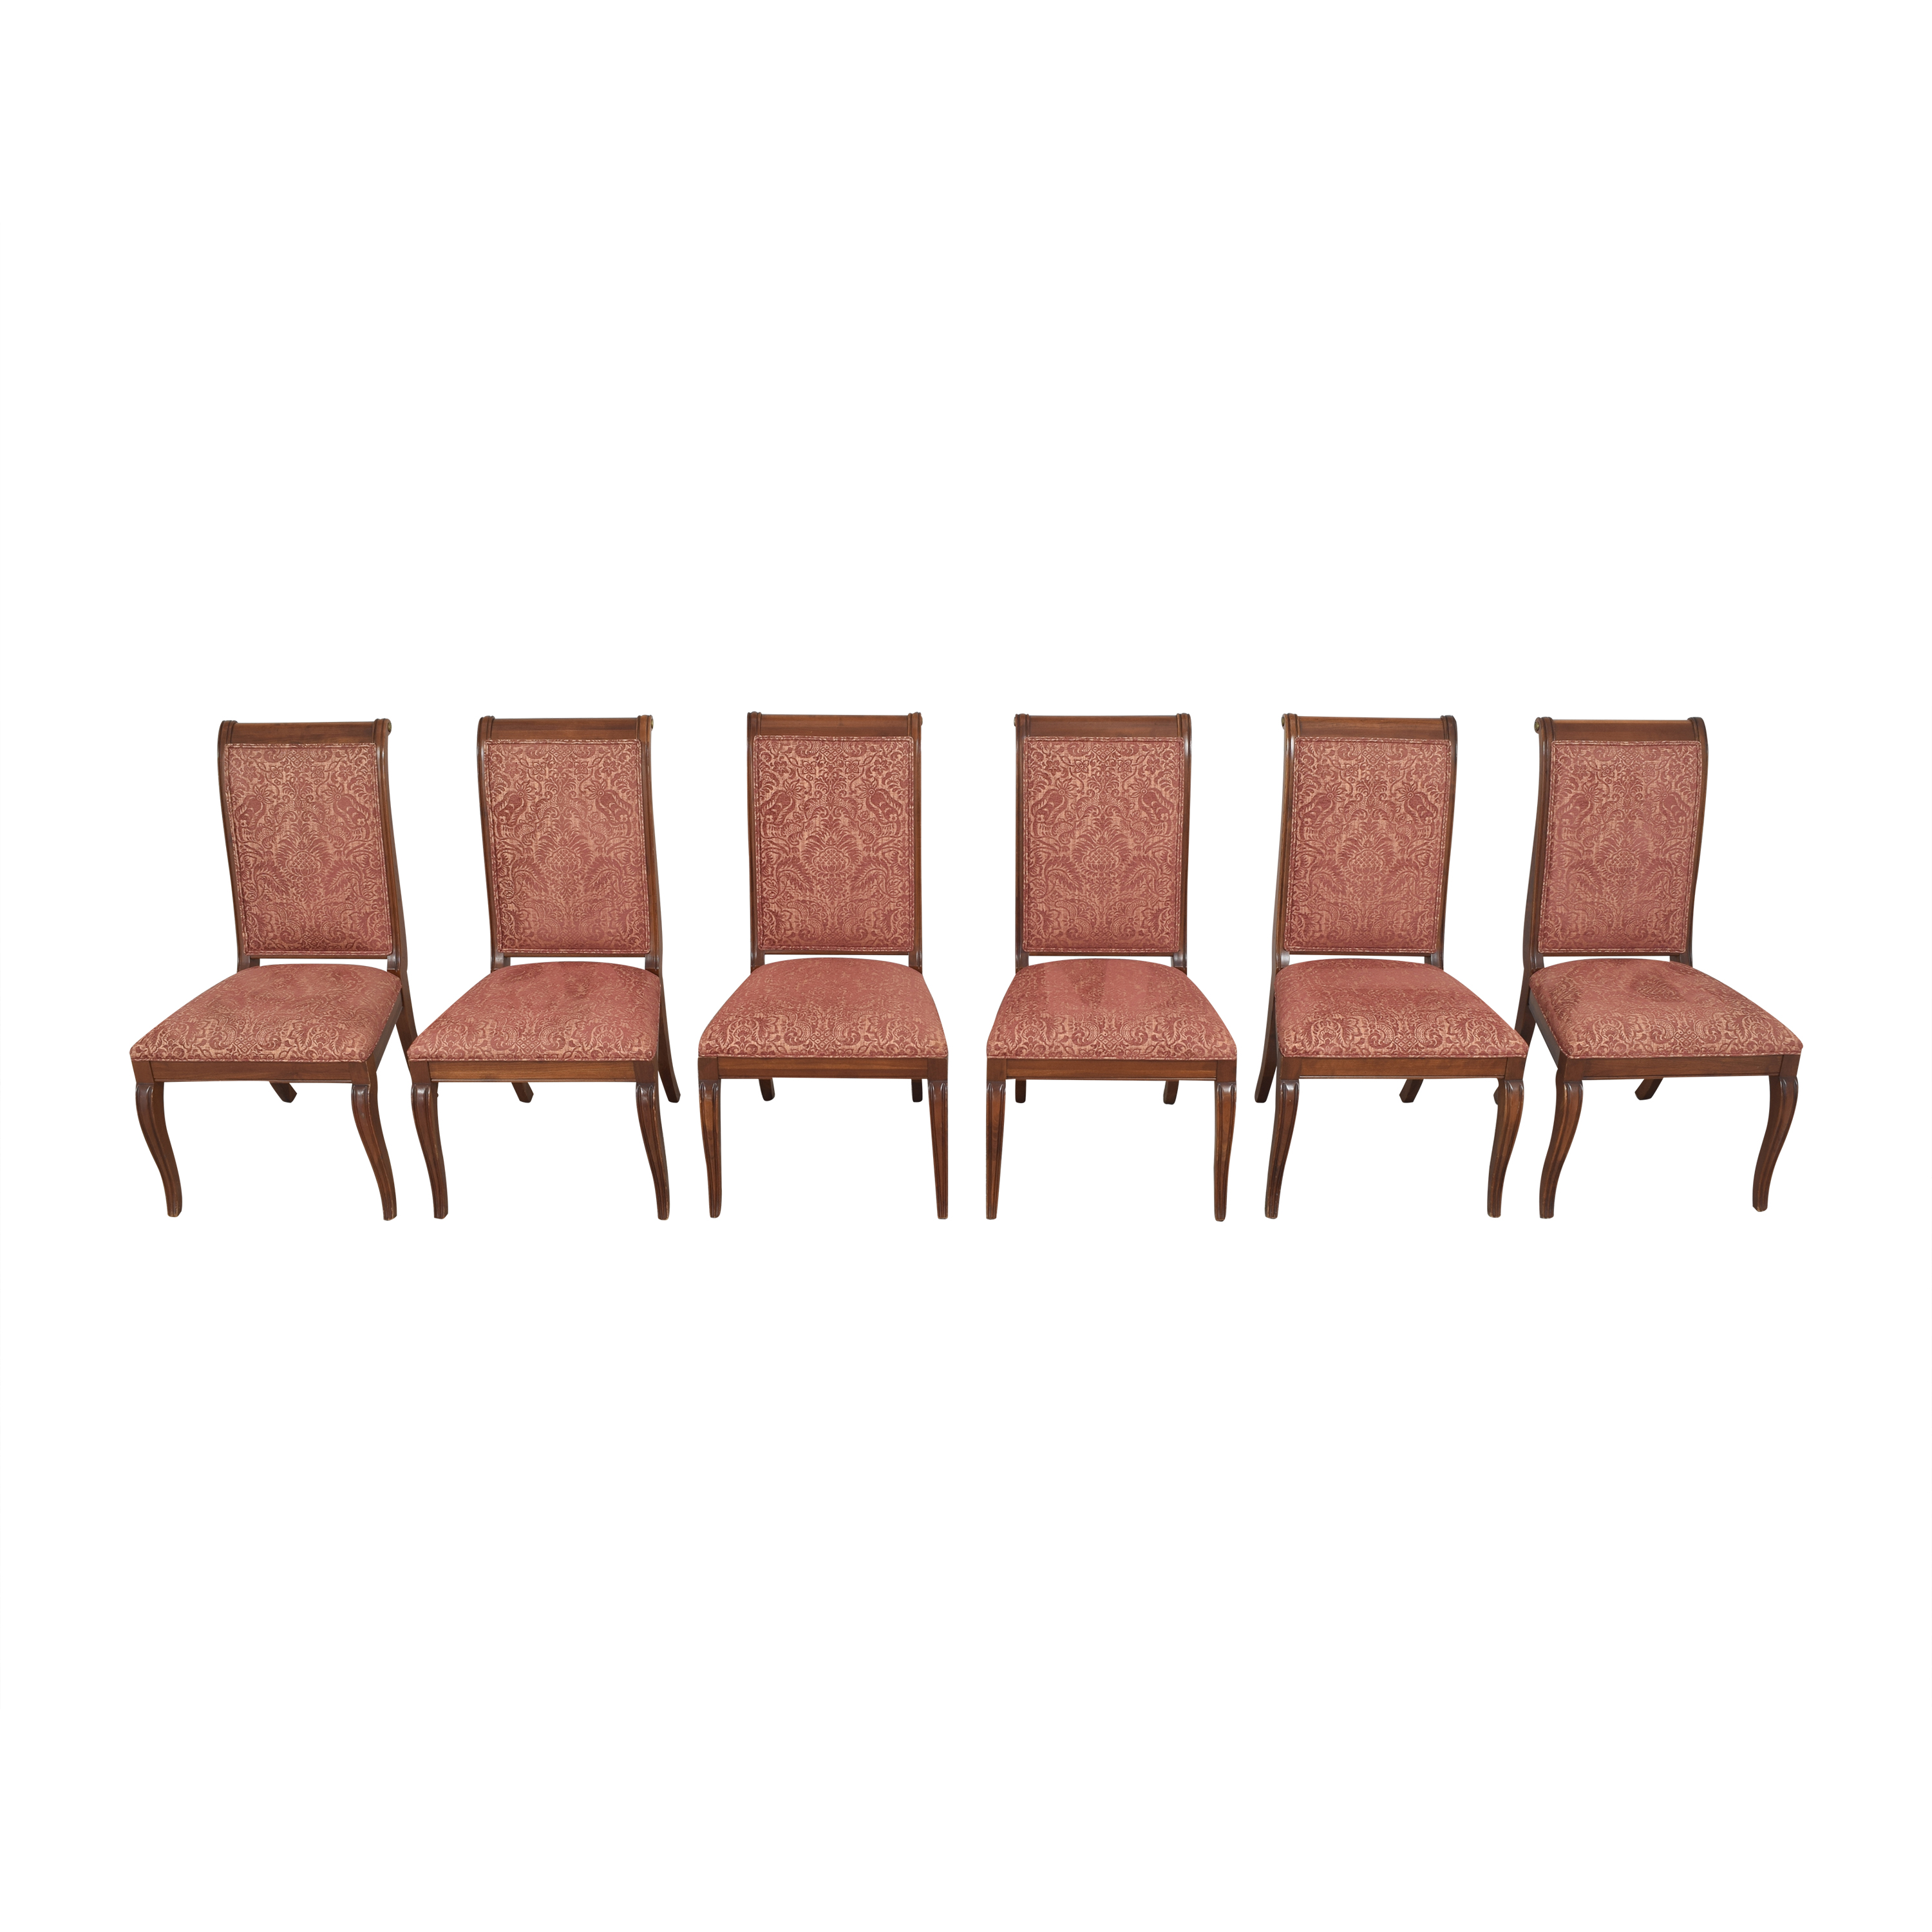 Ethan Allen Ethan Allen Upholstered Dining Side Chairs for sale